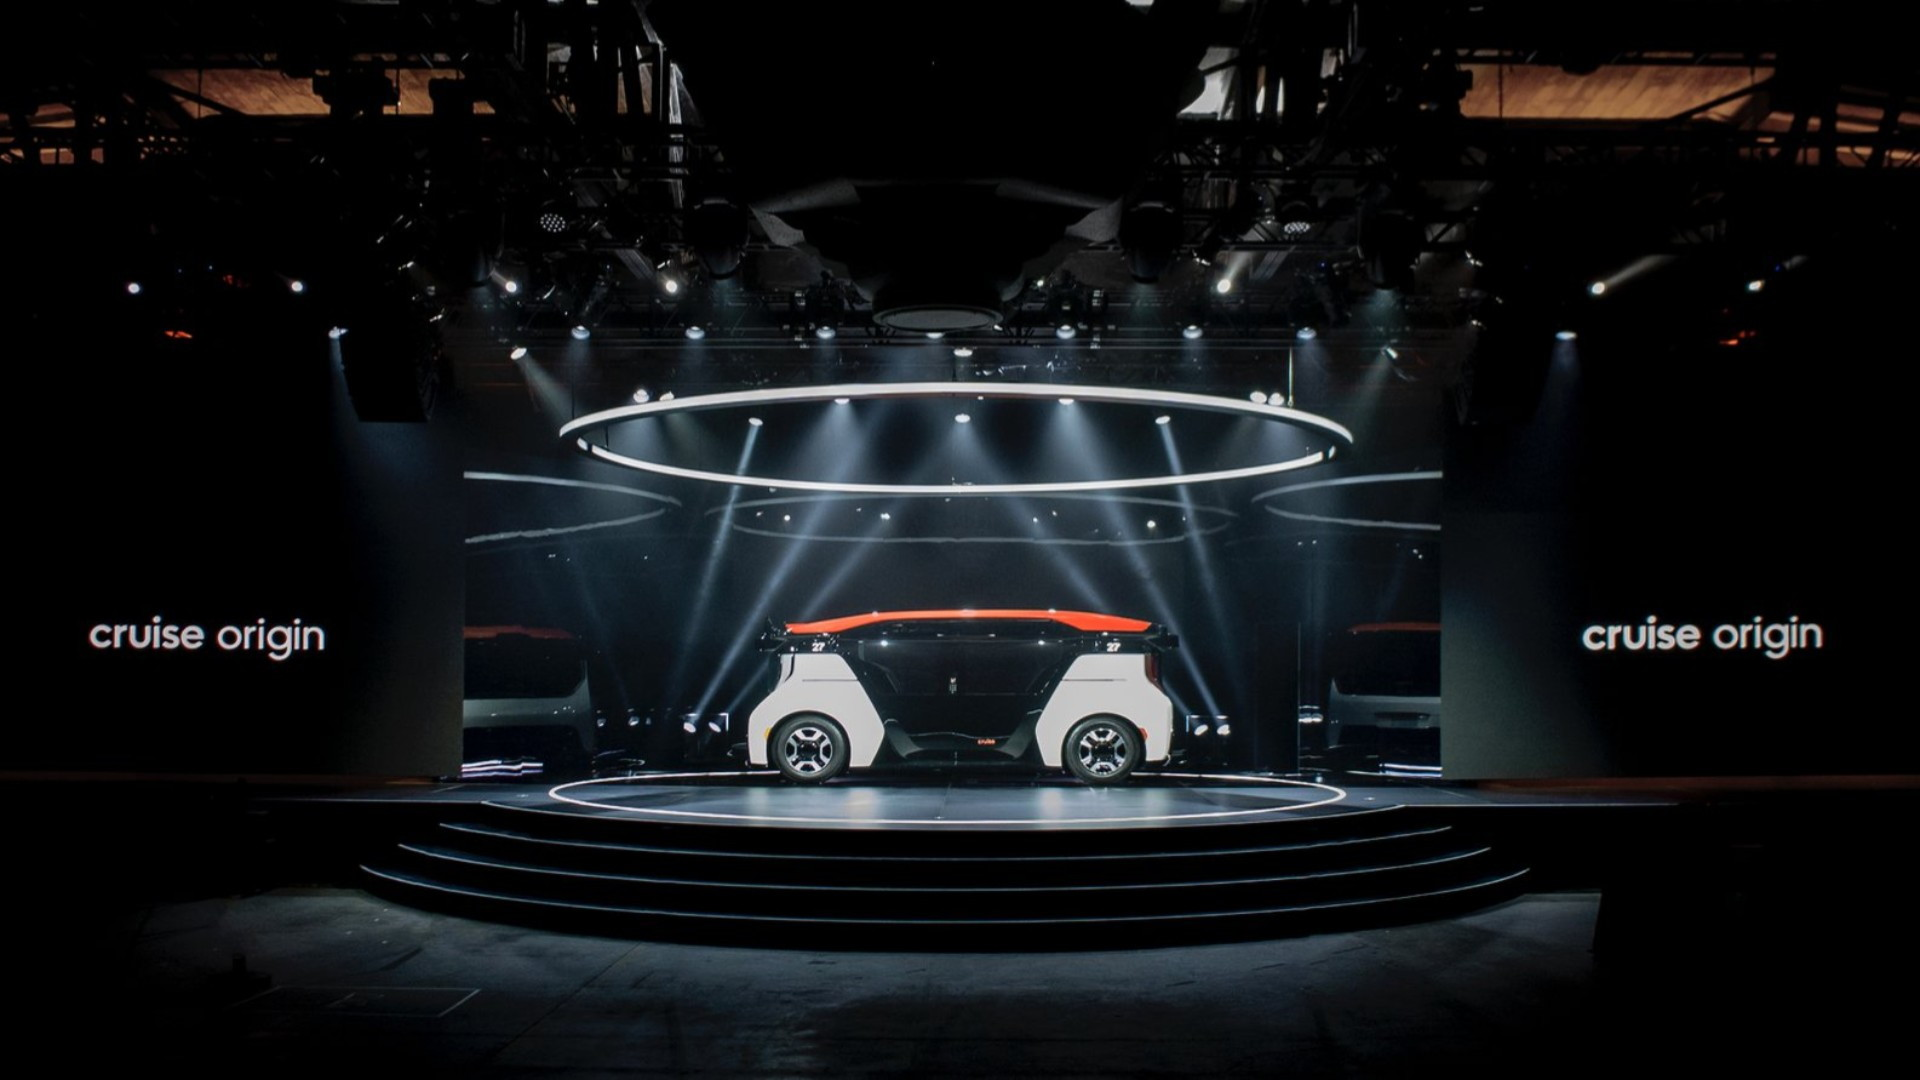 Cruise Origin driverless electric car intro  -  January 2020